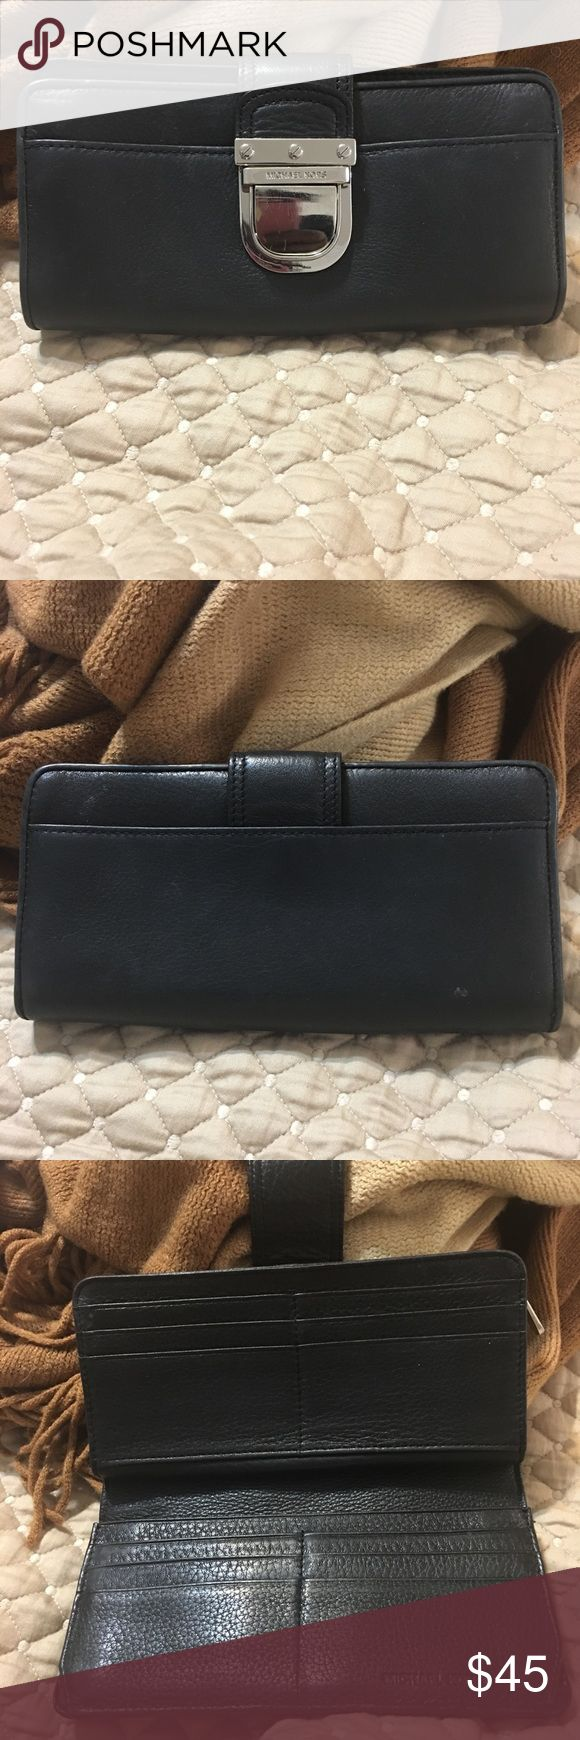 """Michael Kors Leather Wallet Michael Kors Wallet Color- Black Material- Soft Leather Hardware- Silver Length- 7.5"""" Height- 4"""" Features: -Buckle closure - 12 card slots - 4 slits for papers, documents, notes - 1 large opening for cash - 1 zip coin pouch - 1 back snap closure for any additional odds & ends - Open to Offers Michael Kors Bags Wallets"""